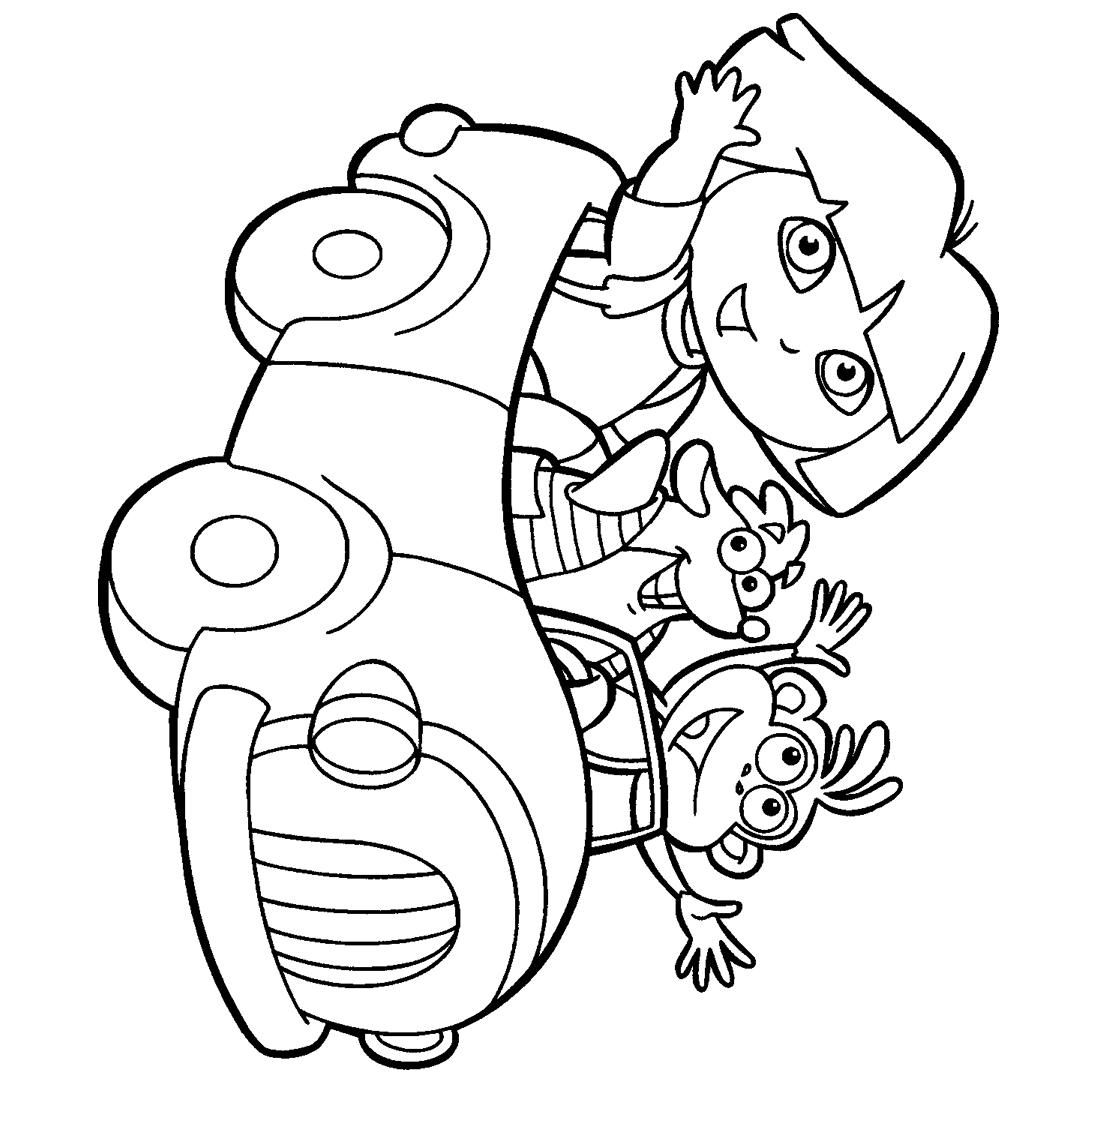 Dora Images To Print And Boots Coloring Pages To Print Dora Images ... | 1139x1099